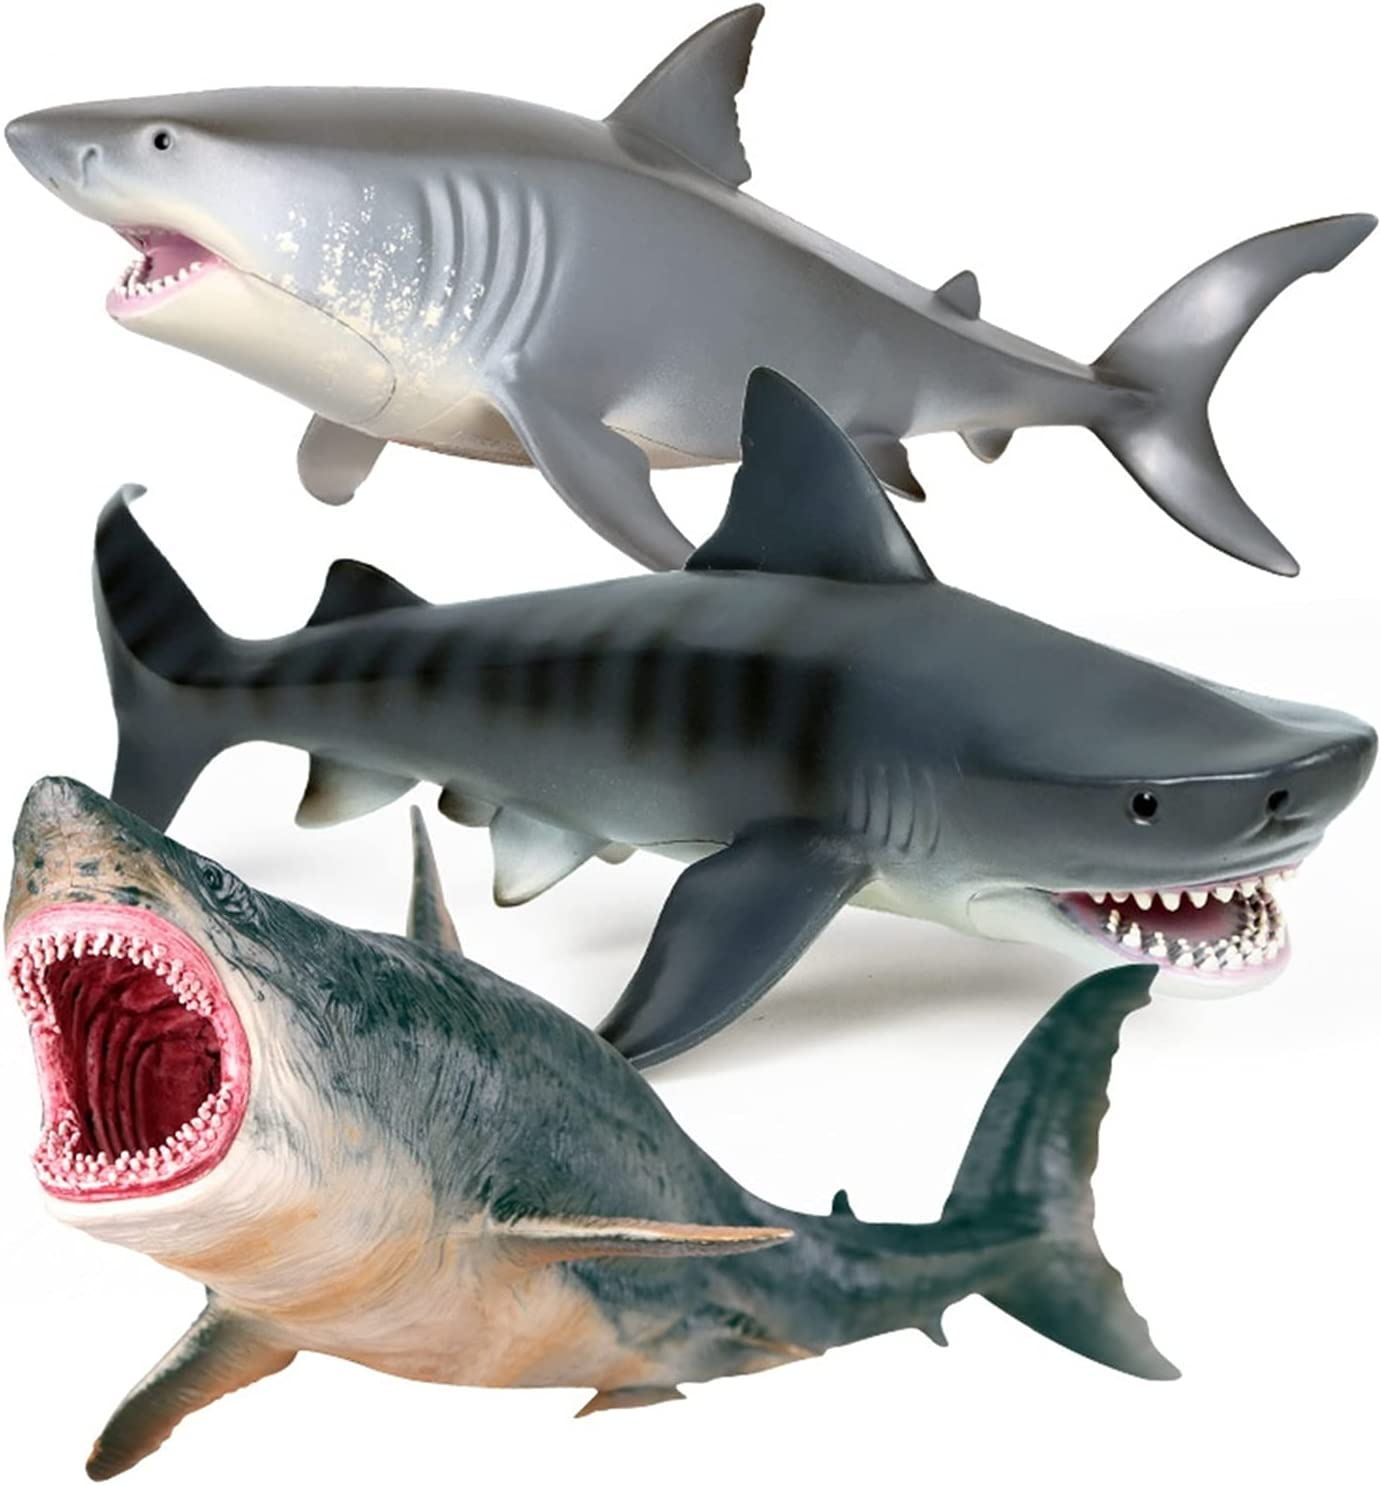 BAIMENGLONG Animal 3 Pieces of Marine Animer and NEW before selling ☆ price revision Mov Whale Shark Model Life